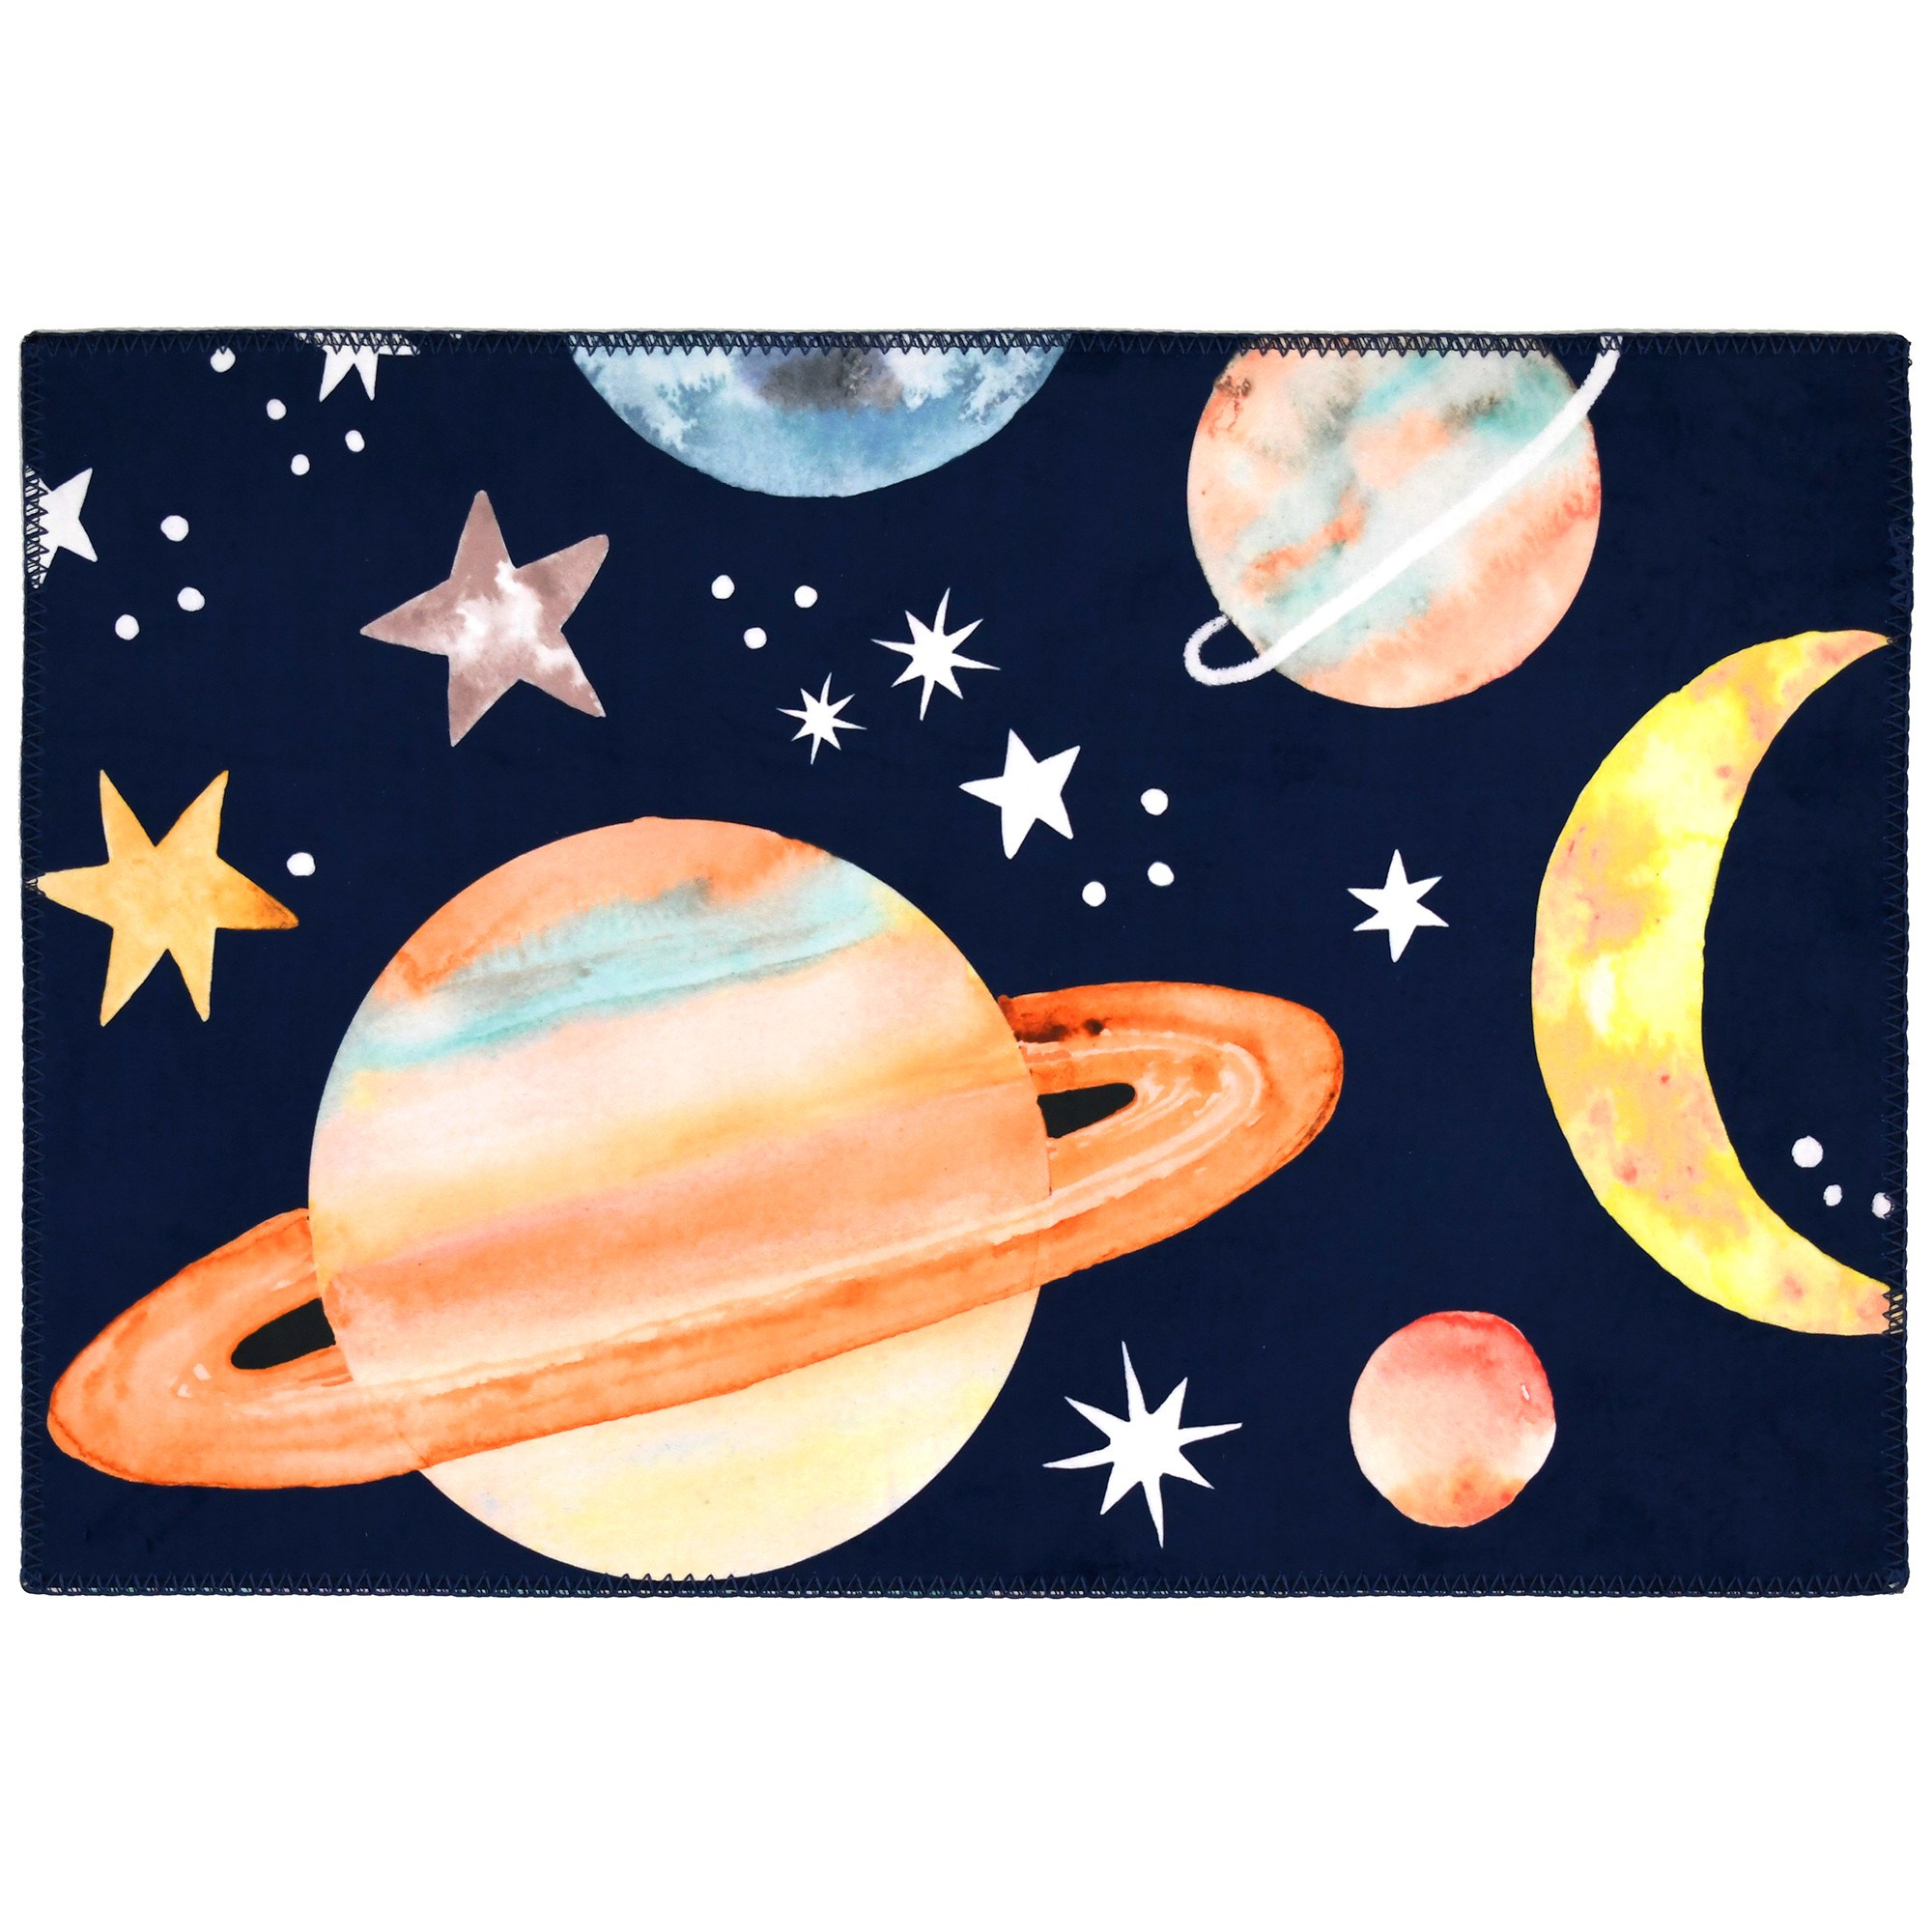 To infinity and beyond, the galaxy has been captured on Sara B.'s Homefires by Jellybean® poly-suede floor cloth. The vibrant hues against a dark blue background are printed on machine washable polyester. The suede like floor cloth is available in four sizes.